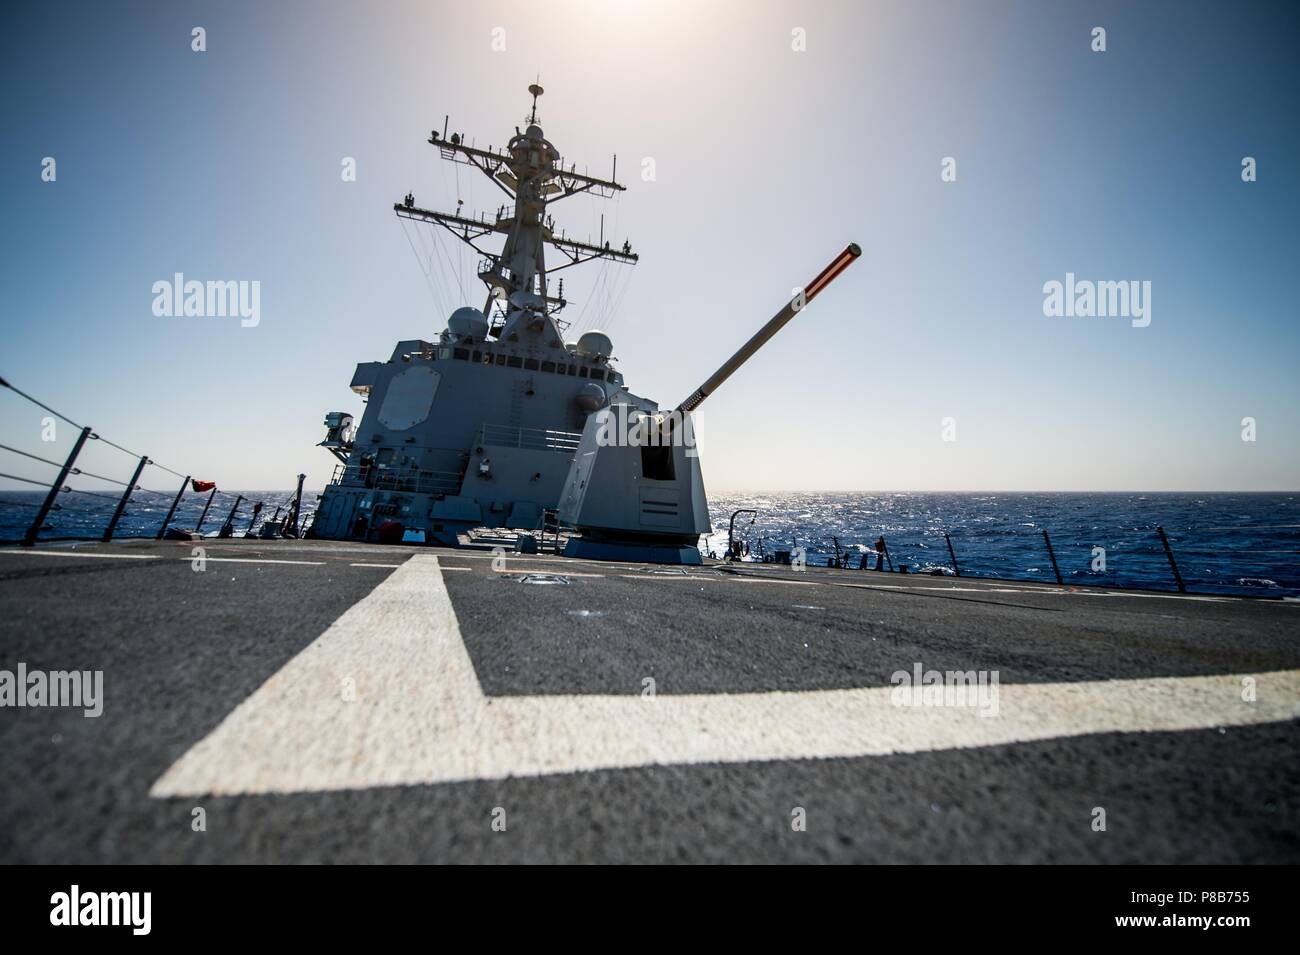 180623-N-LI768-1015 PACIFIC OCEAN (June 23, 2018) - The guided-missile destroyer USS Dewey (DDG 105) transits the Pacific Ocean, June 23, 2018. Dewey is underway in the U.S. 3rd Fleet area of operations. (U.S. Navy photo by Mass Communication Specialist 2nd Class Devin M. Langer/Released). () - Stock Image